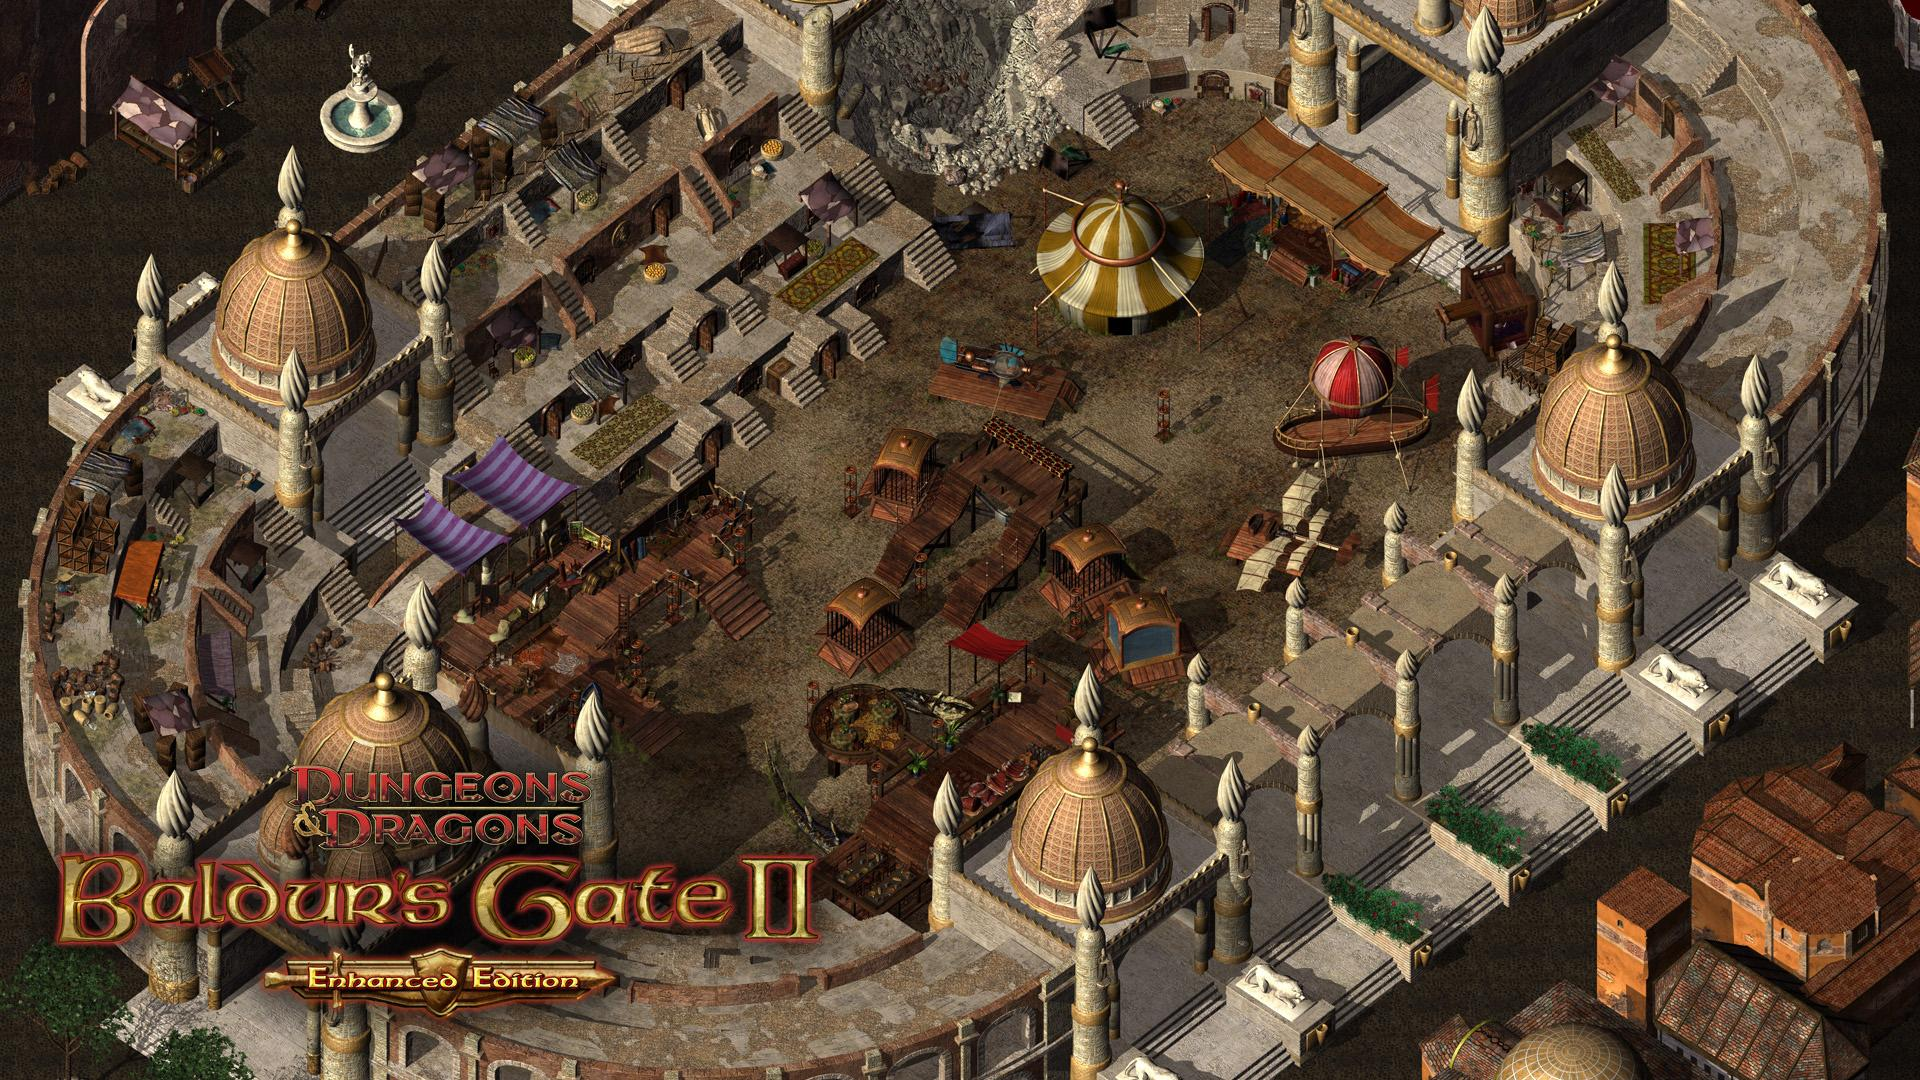 Baldur's Gate II: Enhanced Edition comes to Android for $9.99